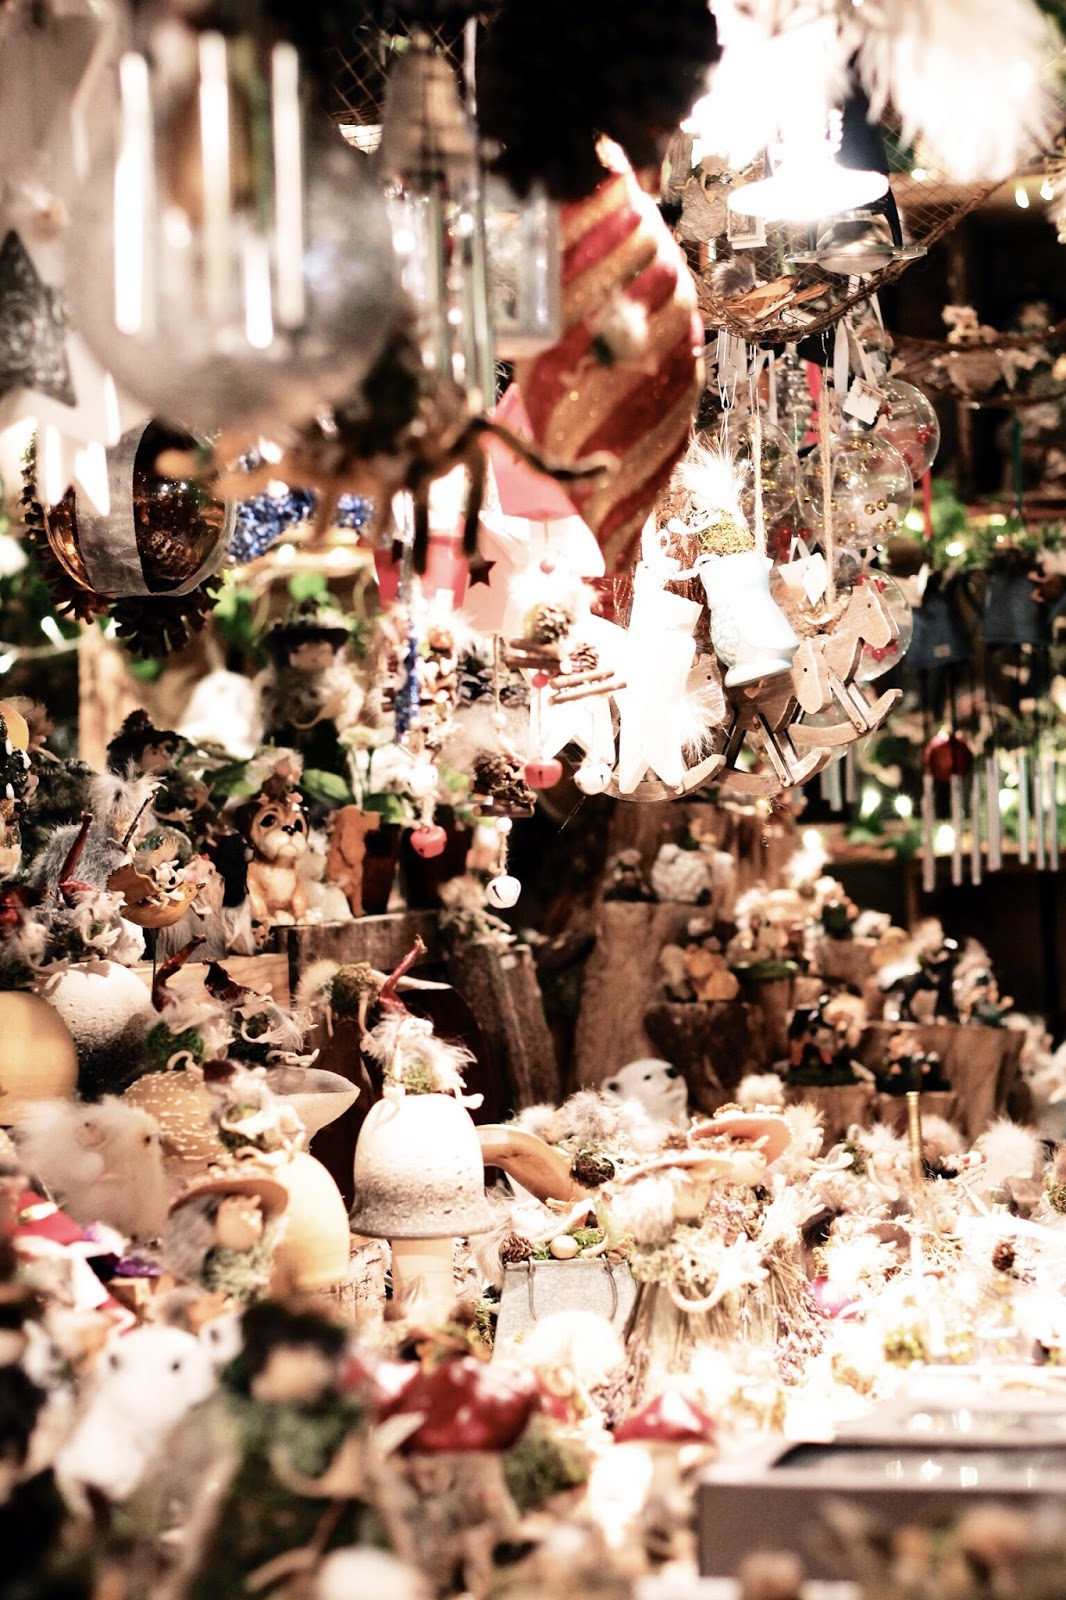 Christmas market stall decorations in Belgium